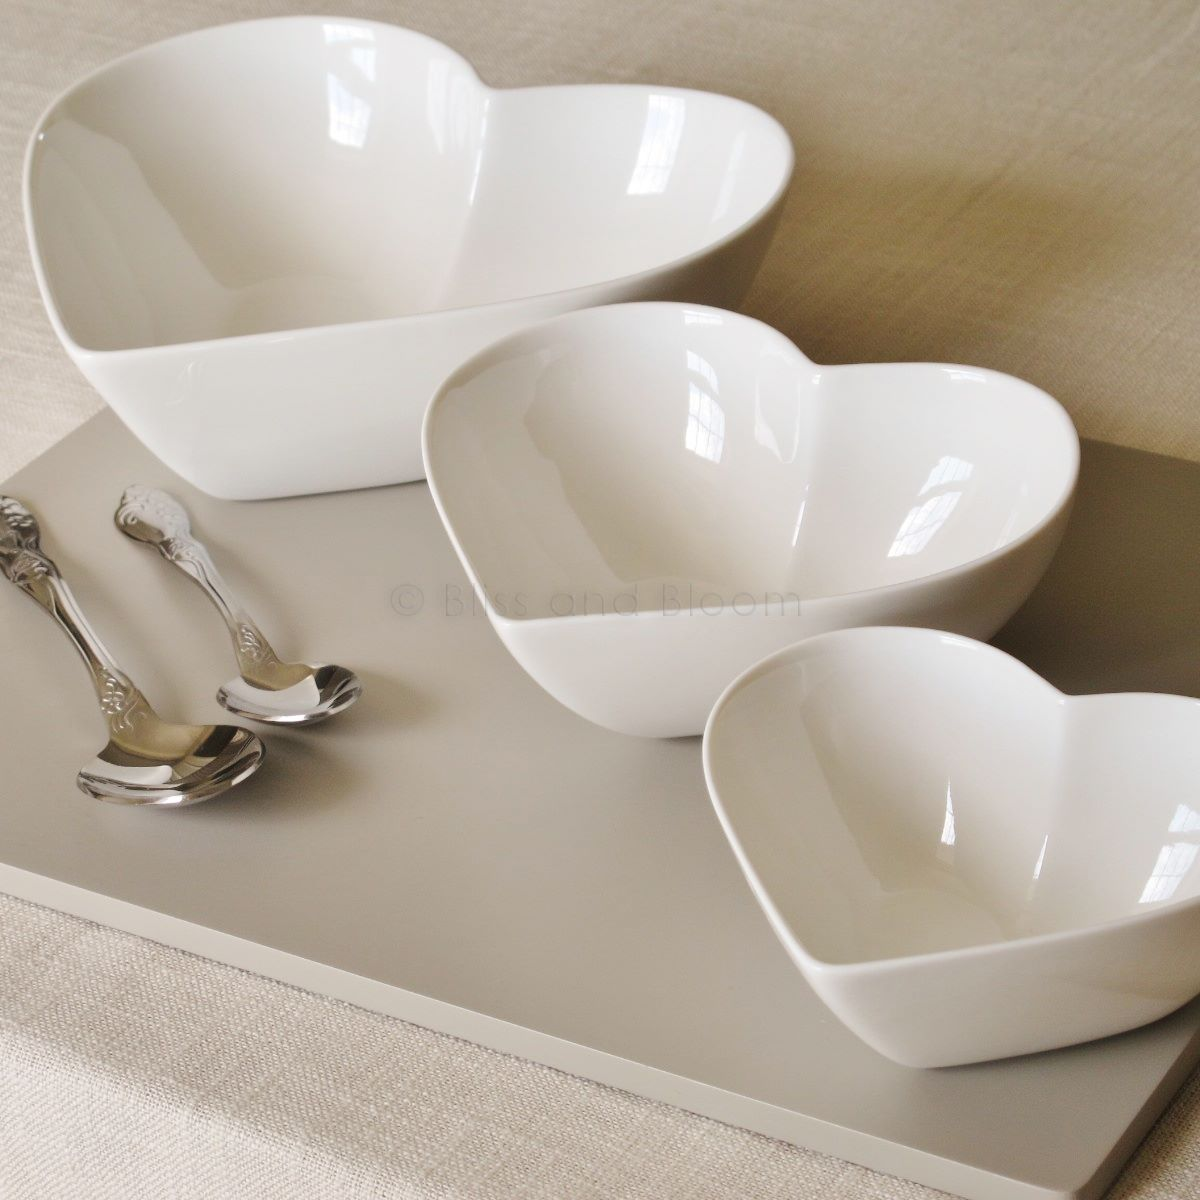 Set Of 3 Heart Shaped Bowls Bliss And Bloom Ltd